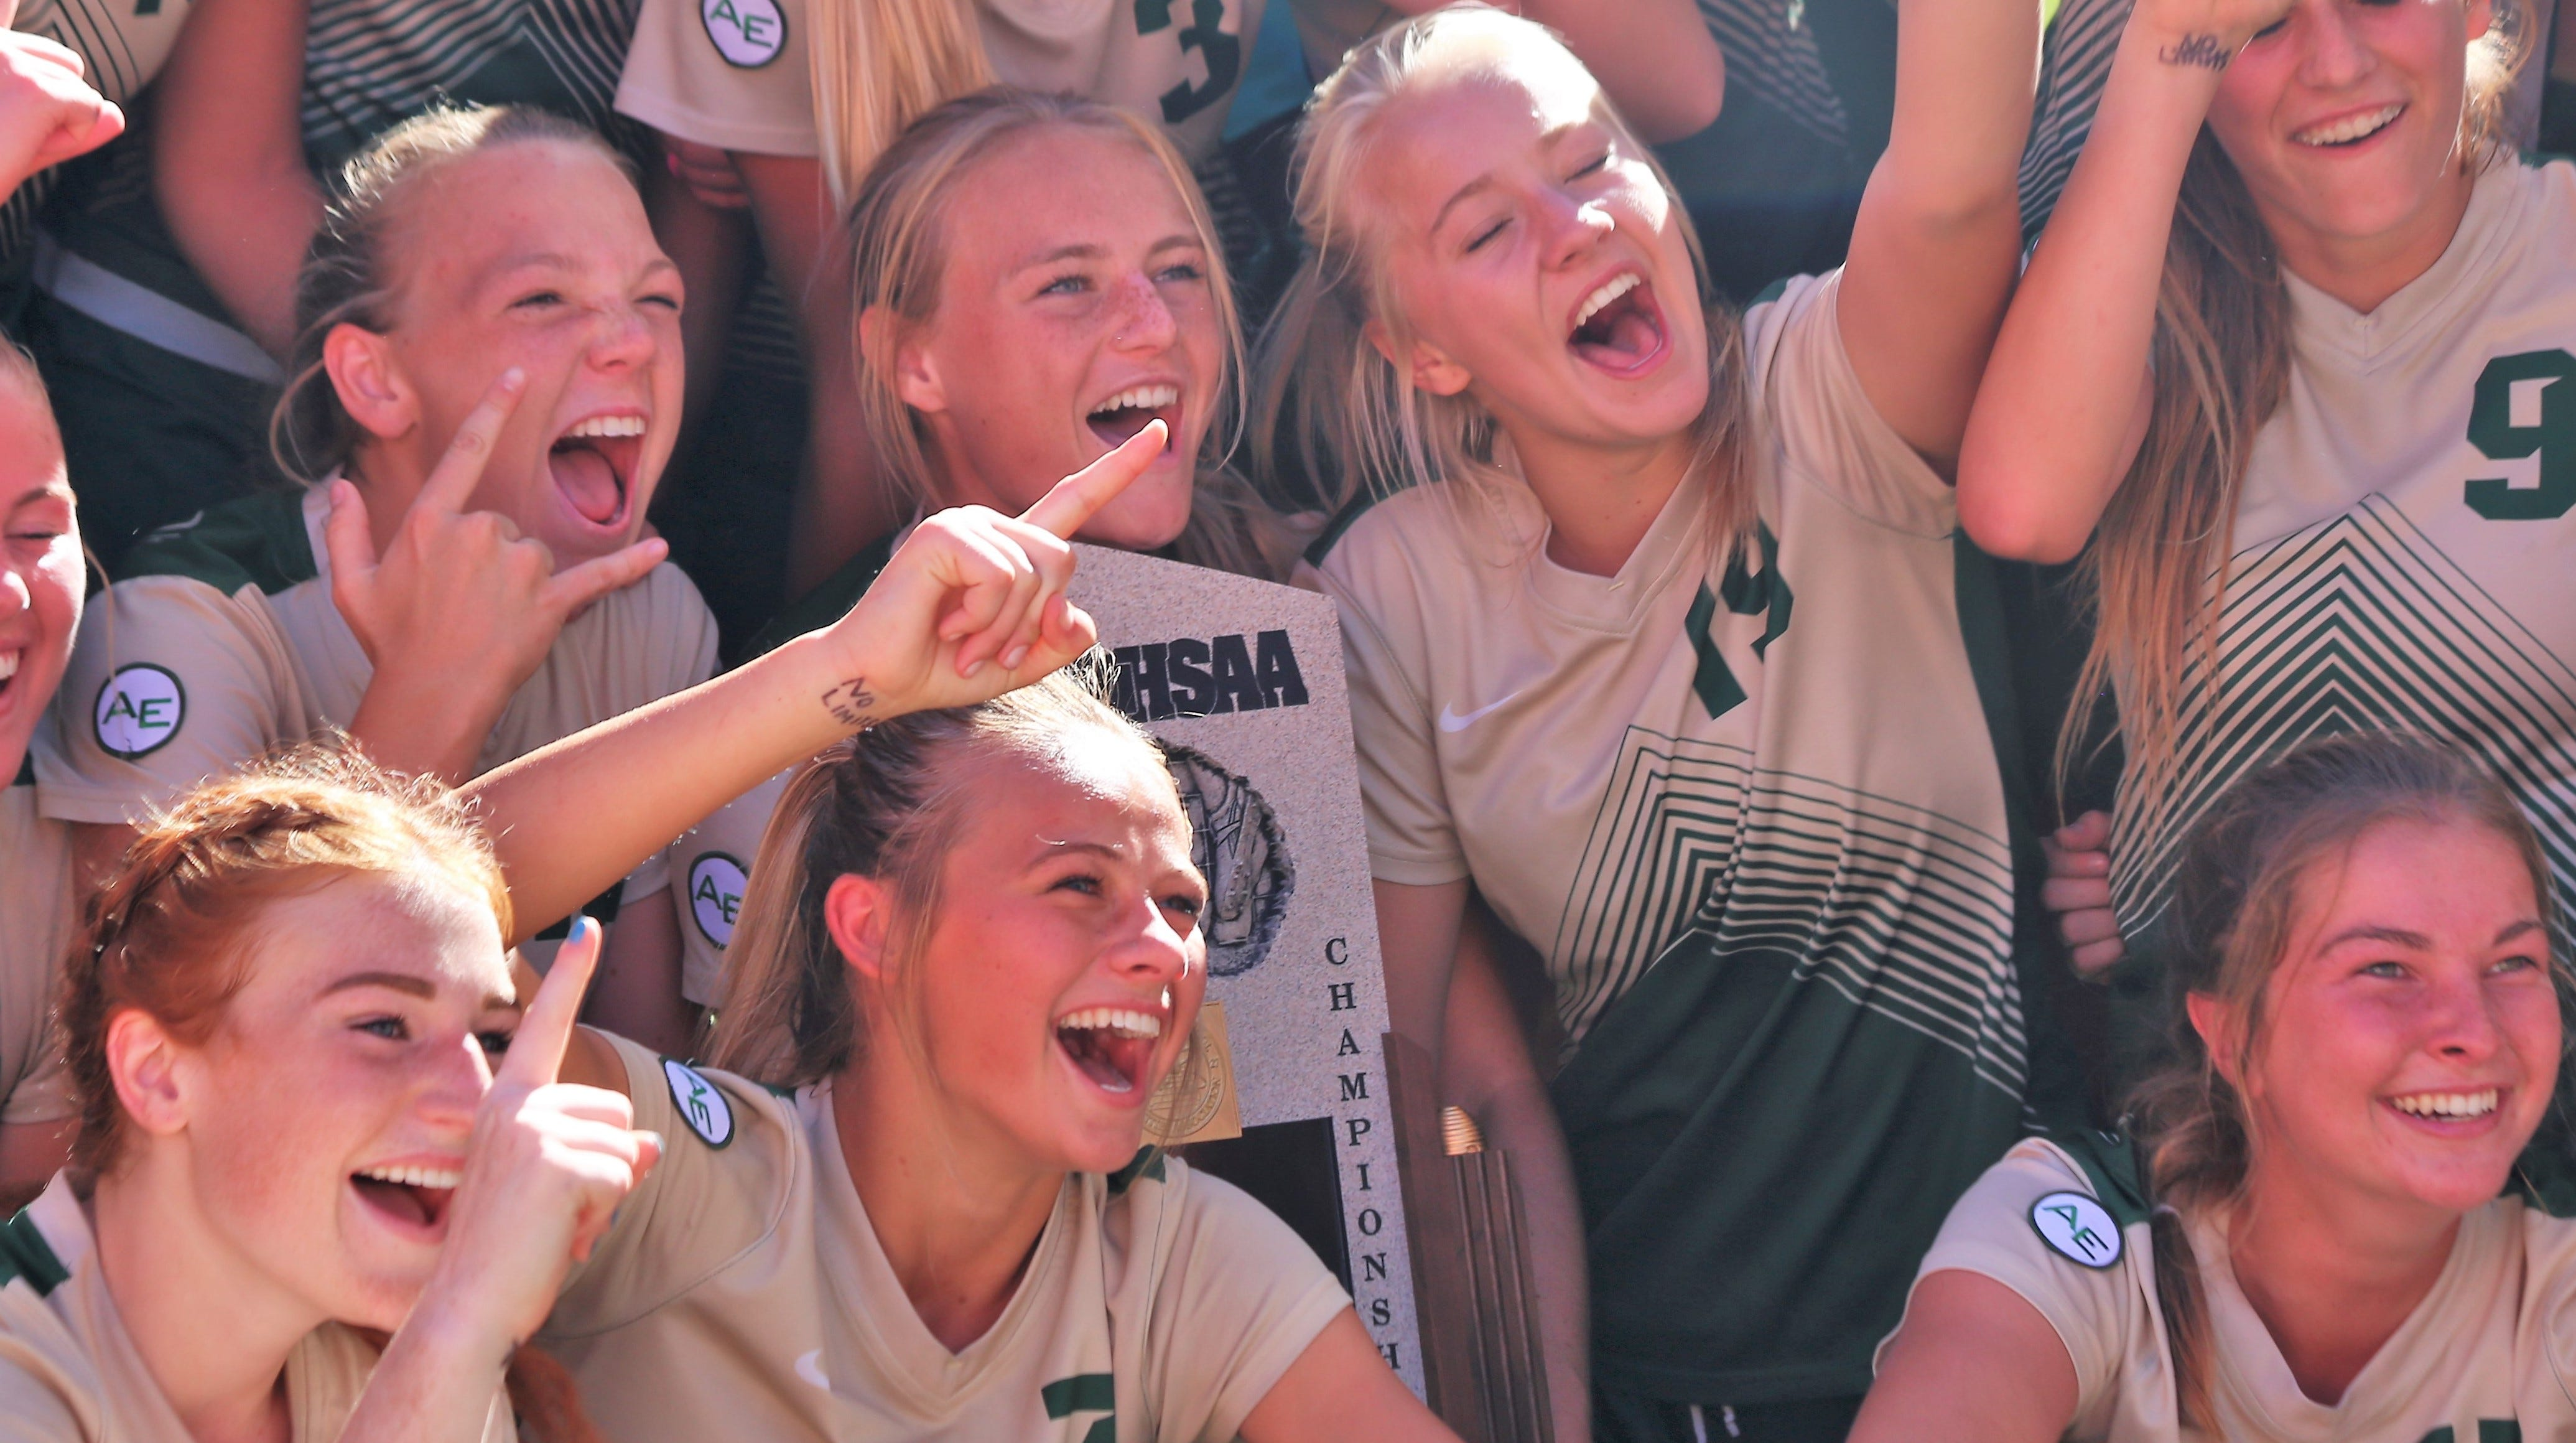 Snow Canyon celebrates after winning the 4A state soccer championship in Sandy on Oct. 20, 2018.